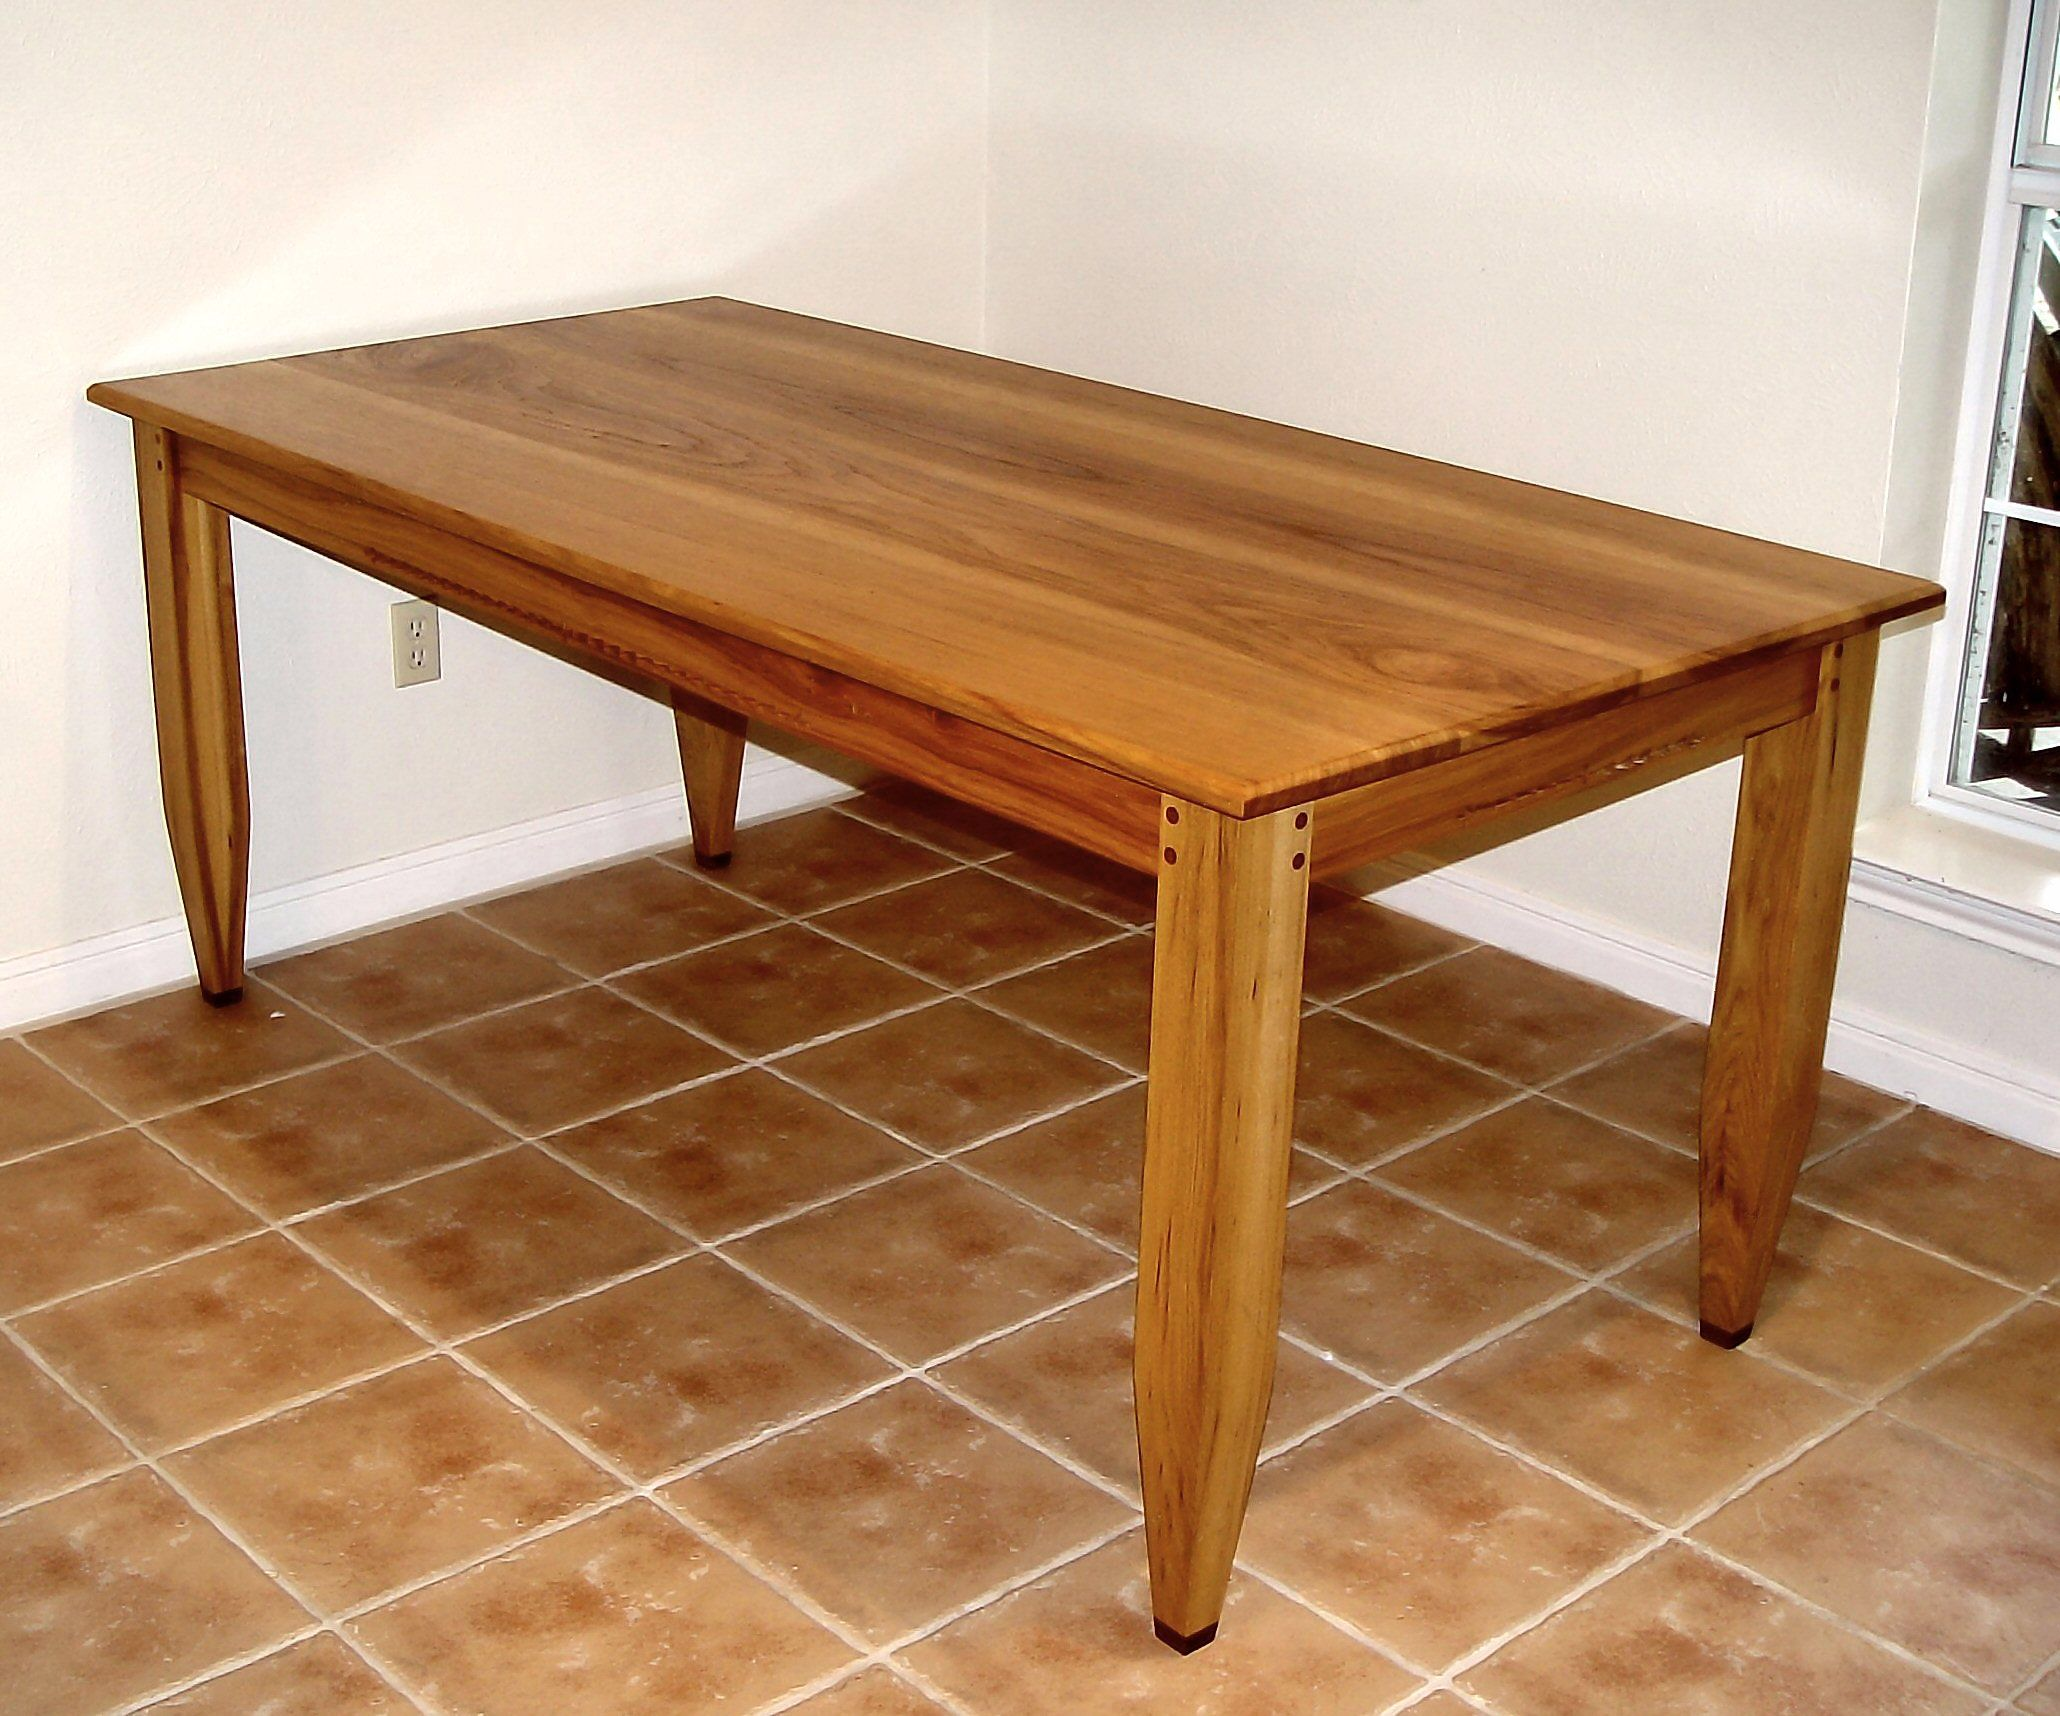 Kay La Traditional Woodworking Table